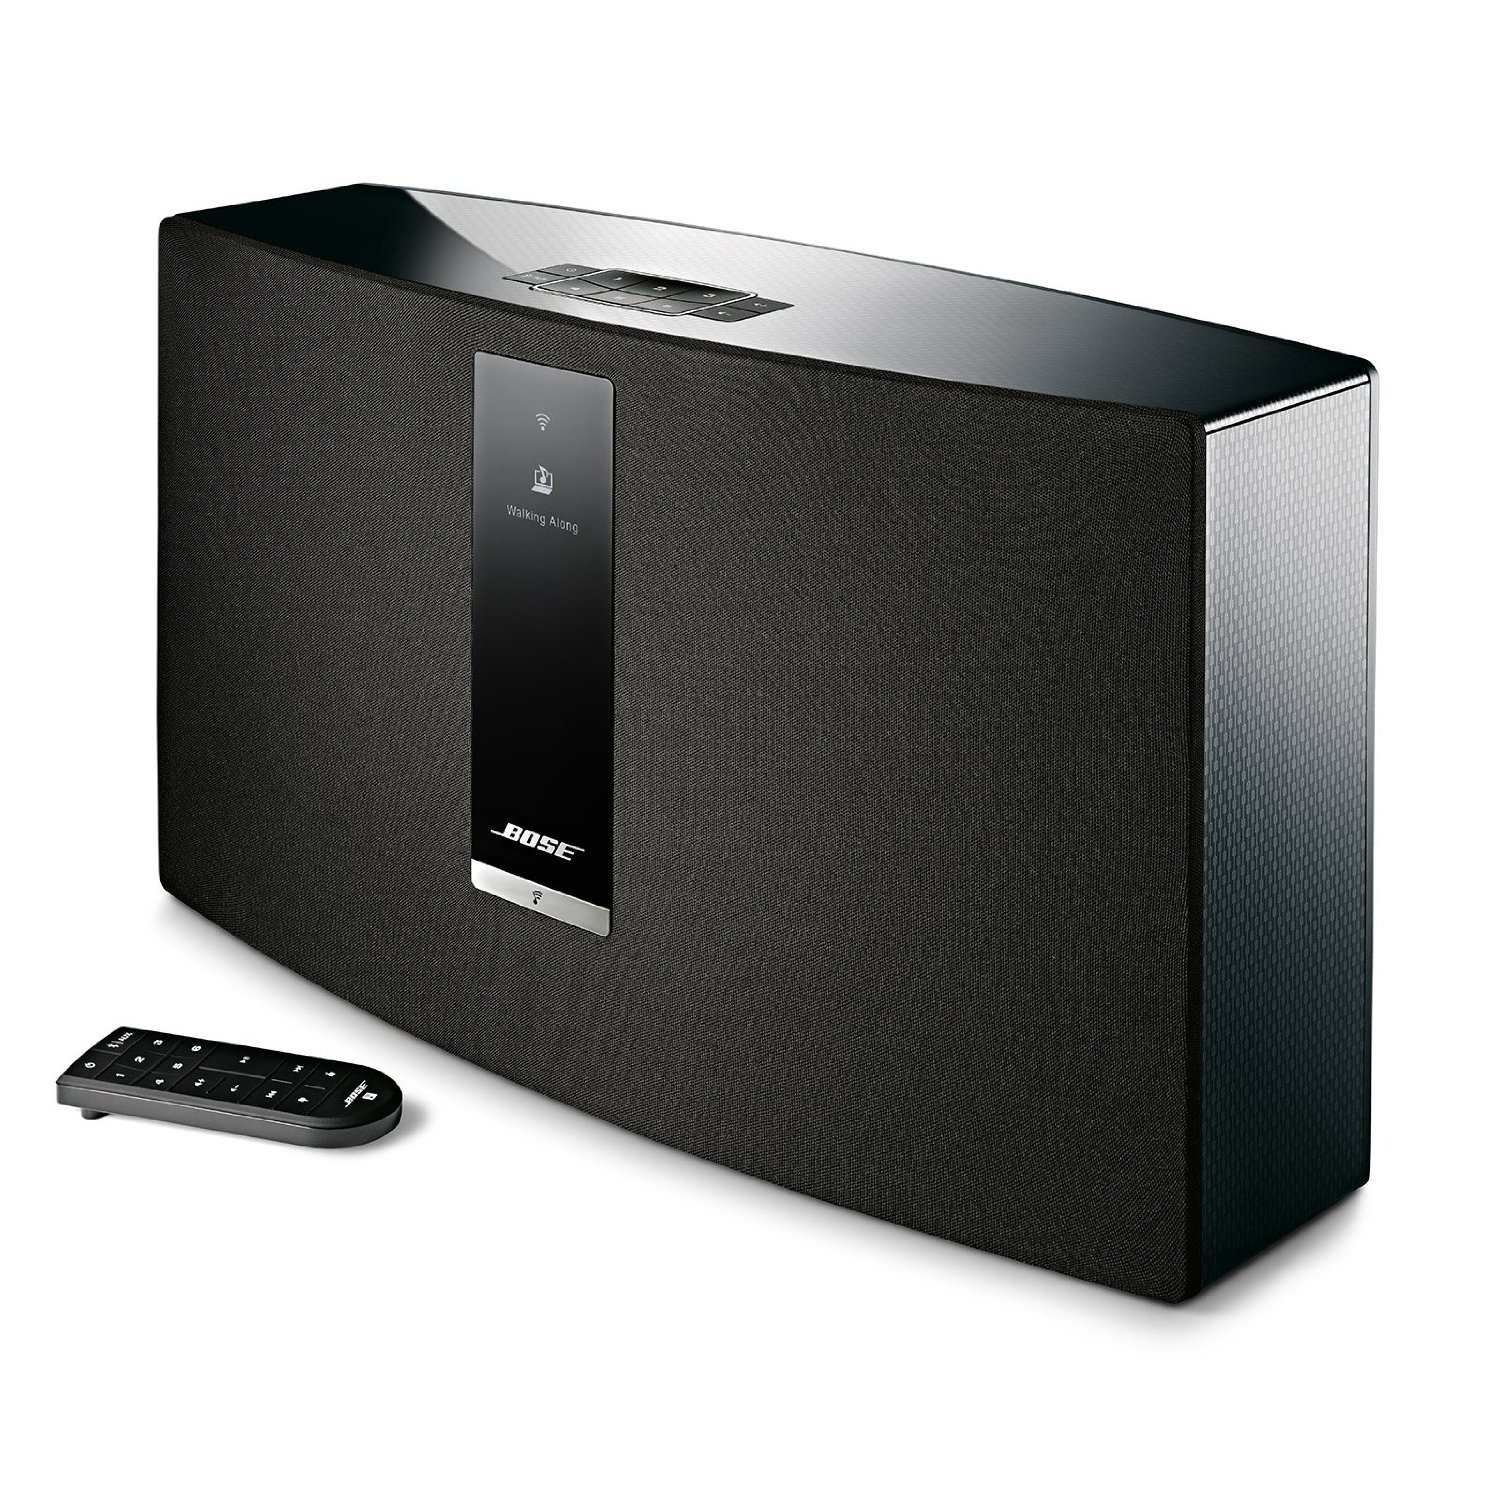 Bose SoundTouch 30 wireless speaker, works with Alexa – Black